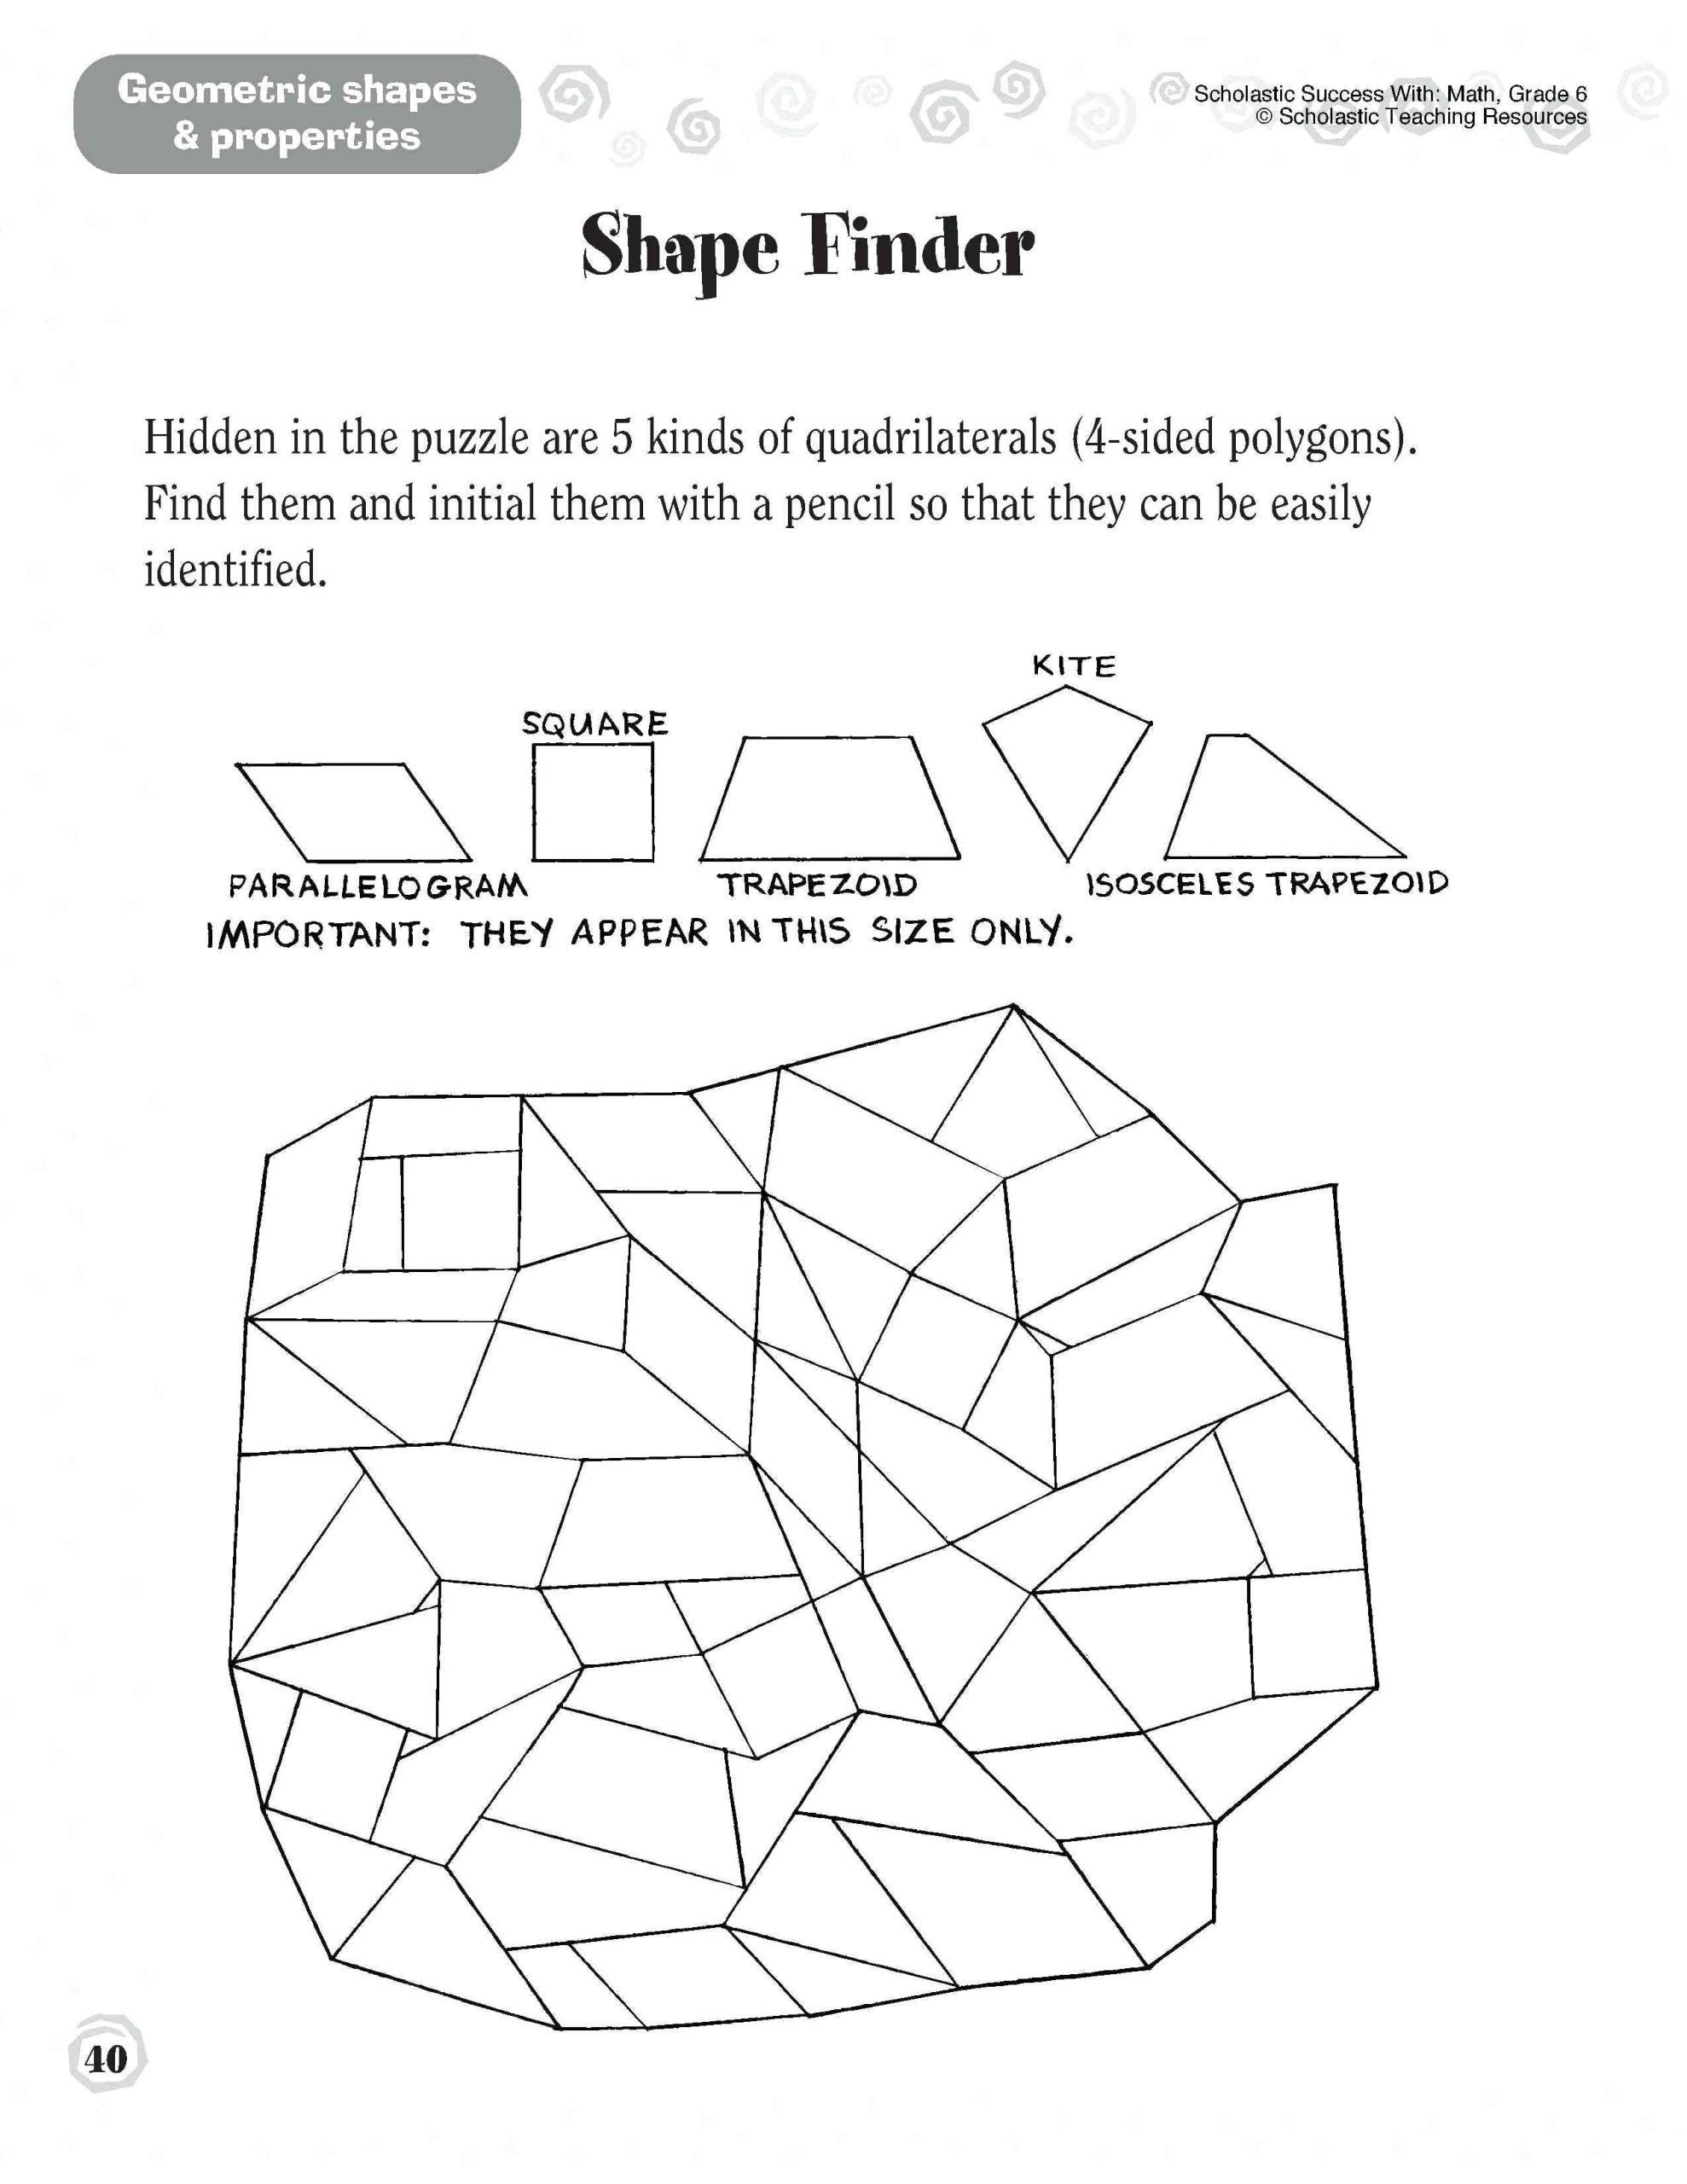 Geometry Worksheet 2nd Grade 5 Free Math Worksheets Third Grade 3 Addition Adding whole